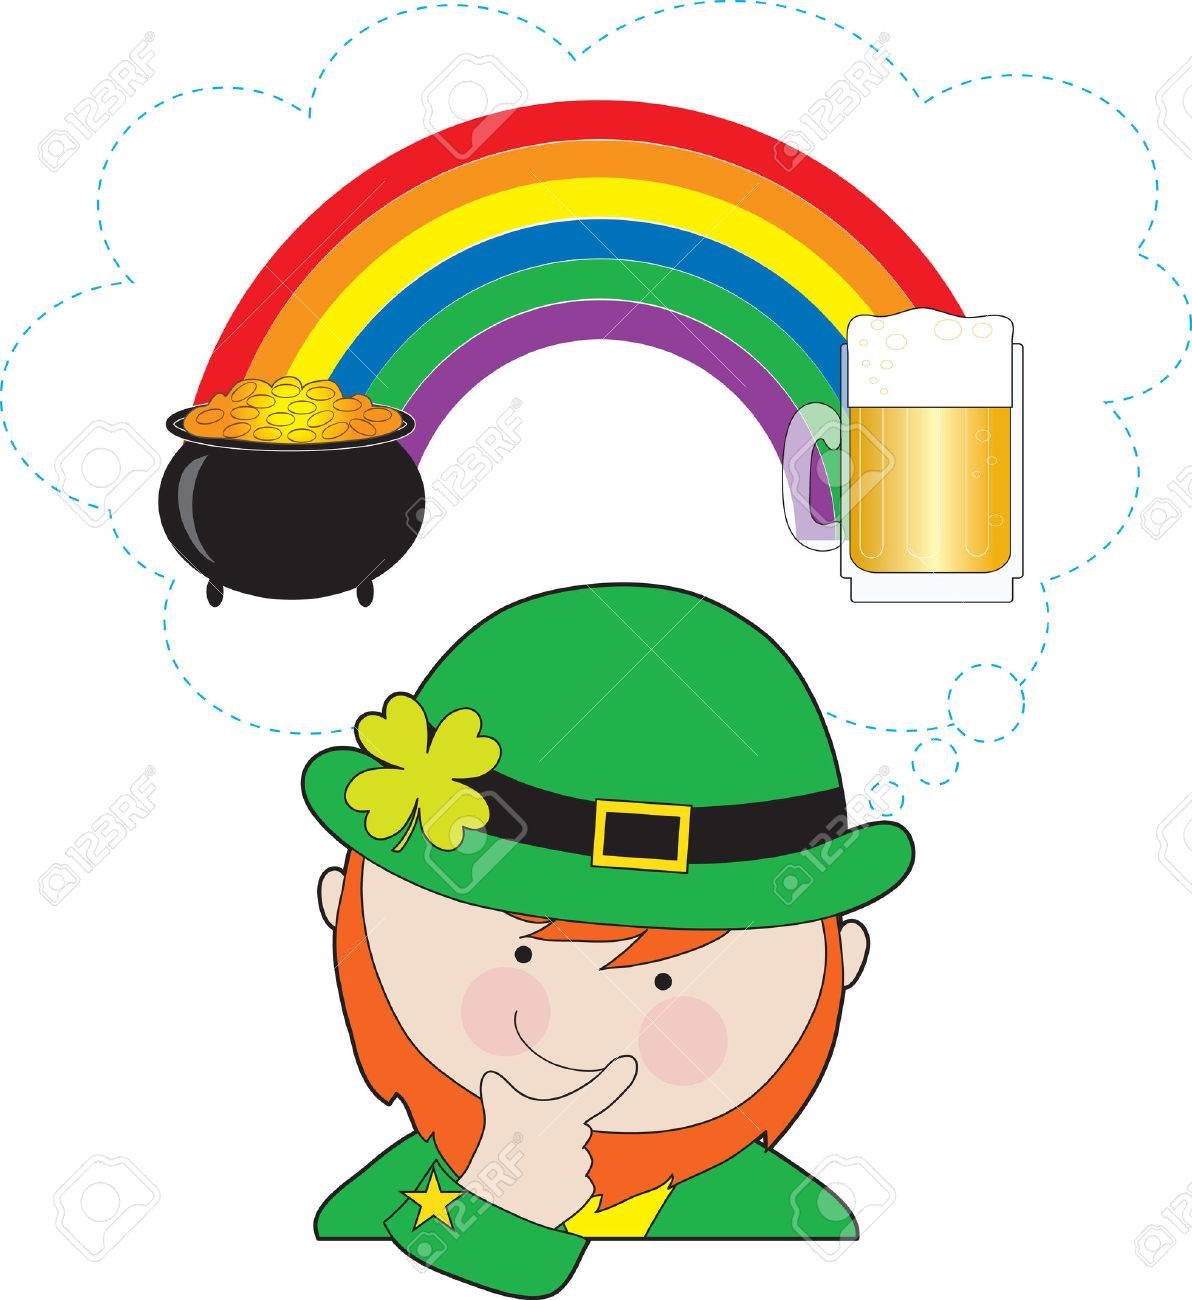 Uncategorized Leprechauns And Rainbows a leprechaun is pondering what at the ends of rainbow pot of